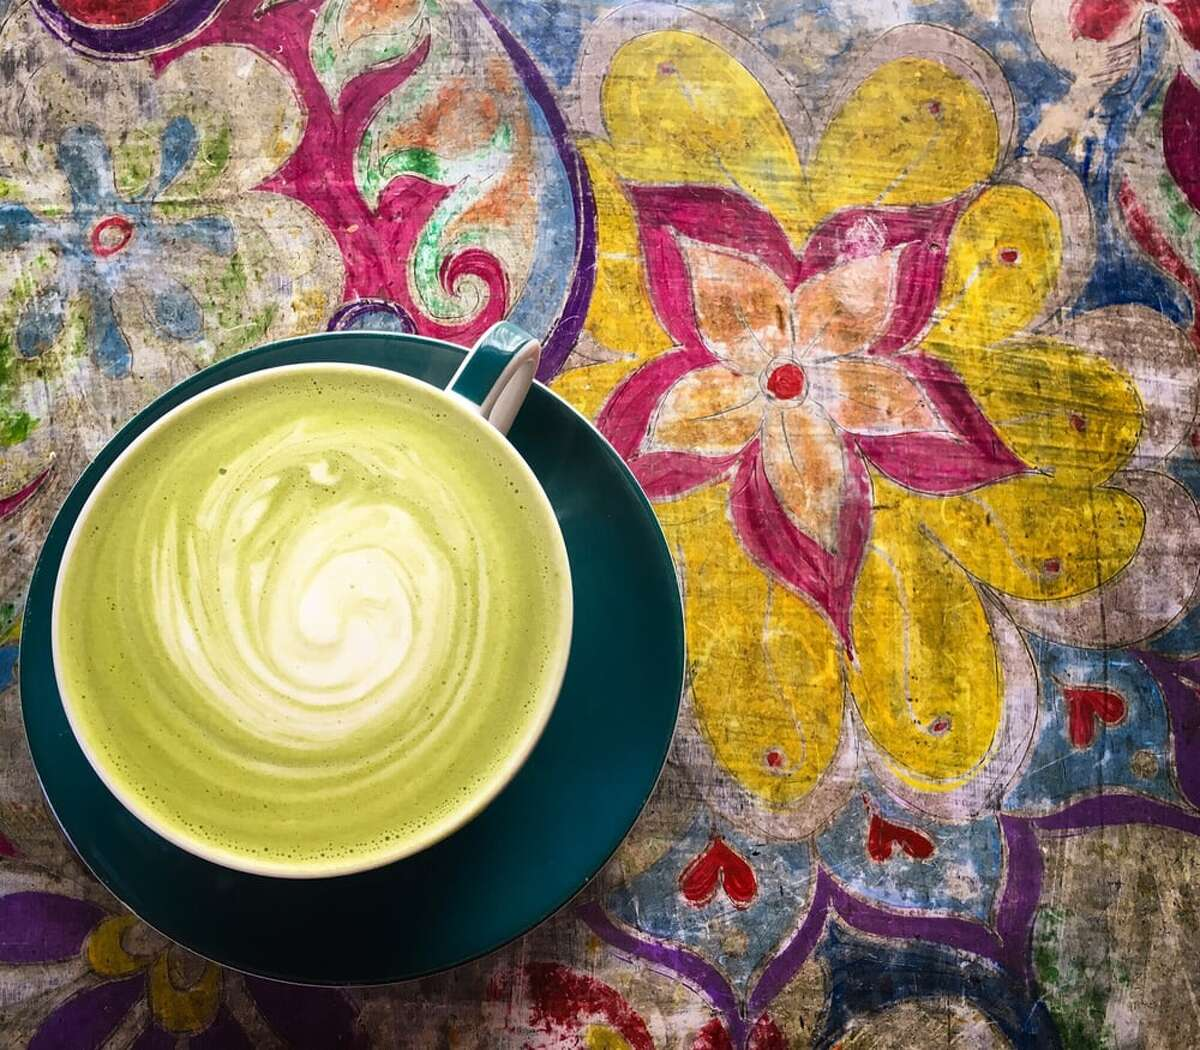 Matcha Lattes, Ugly Mug Cafe: It's all means of matcha nowadays, whether that's in ice cream form, doughnut form, or even pancake form. At least we can depend on the University District's Ugly Mug Cafe for a darn good (and good looking) latte.